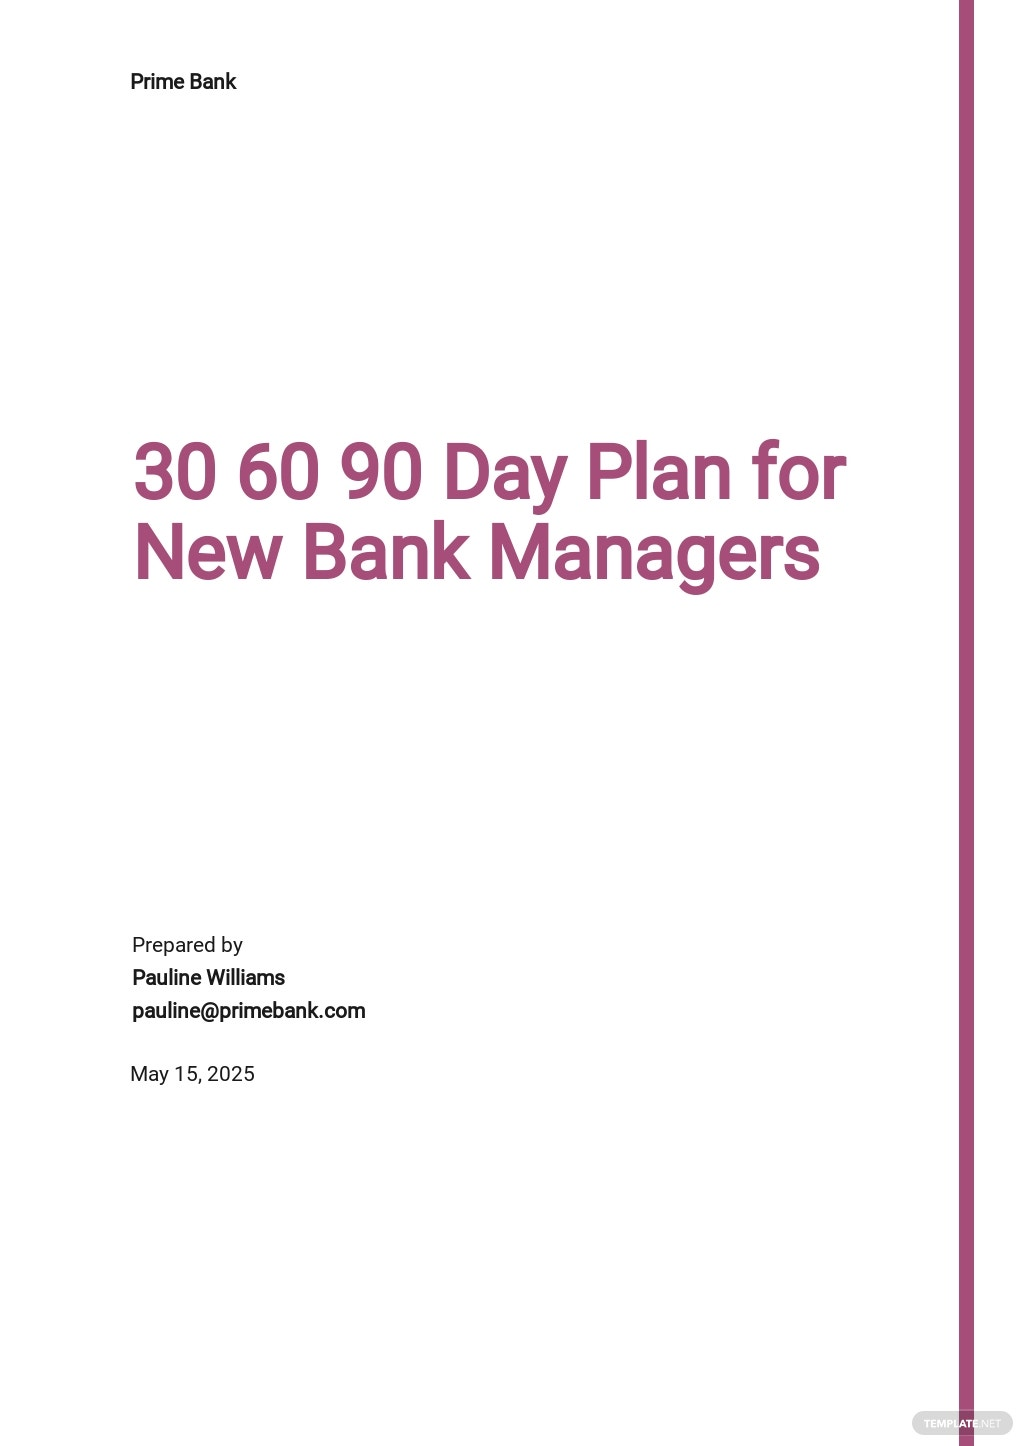 30 60 90 Day Plan for New Bank Managers Template.jpe